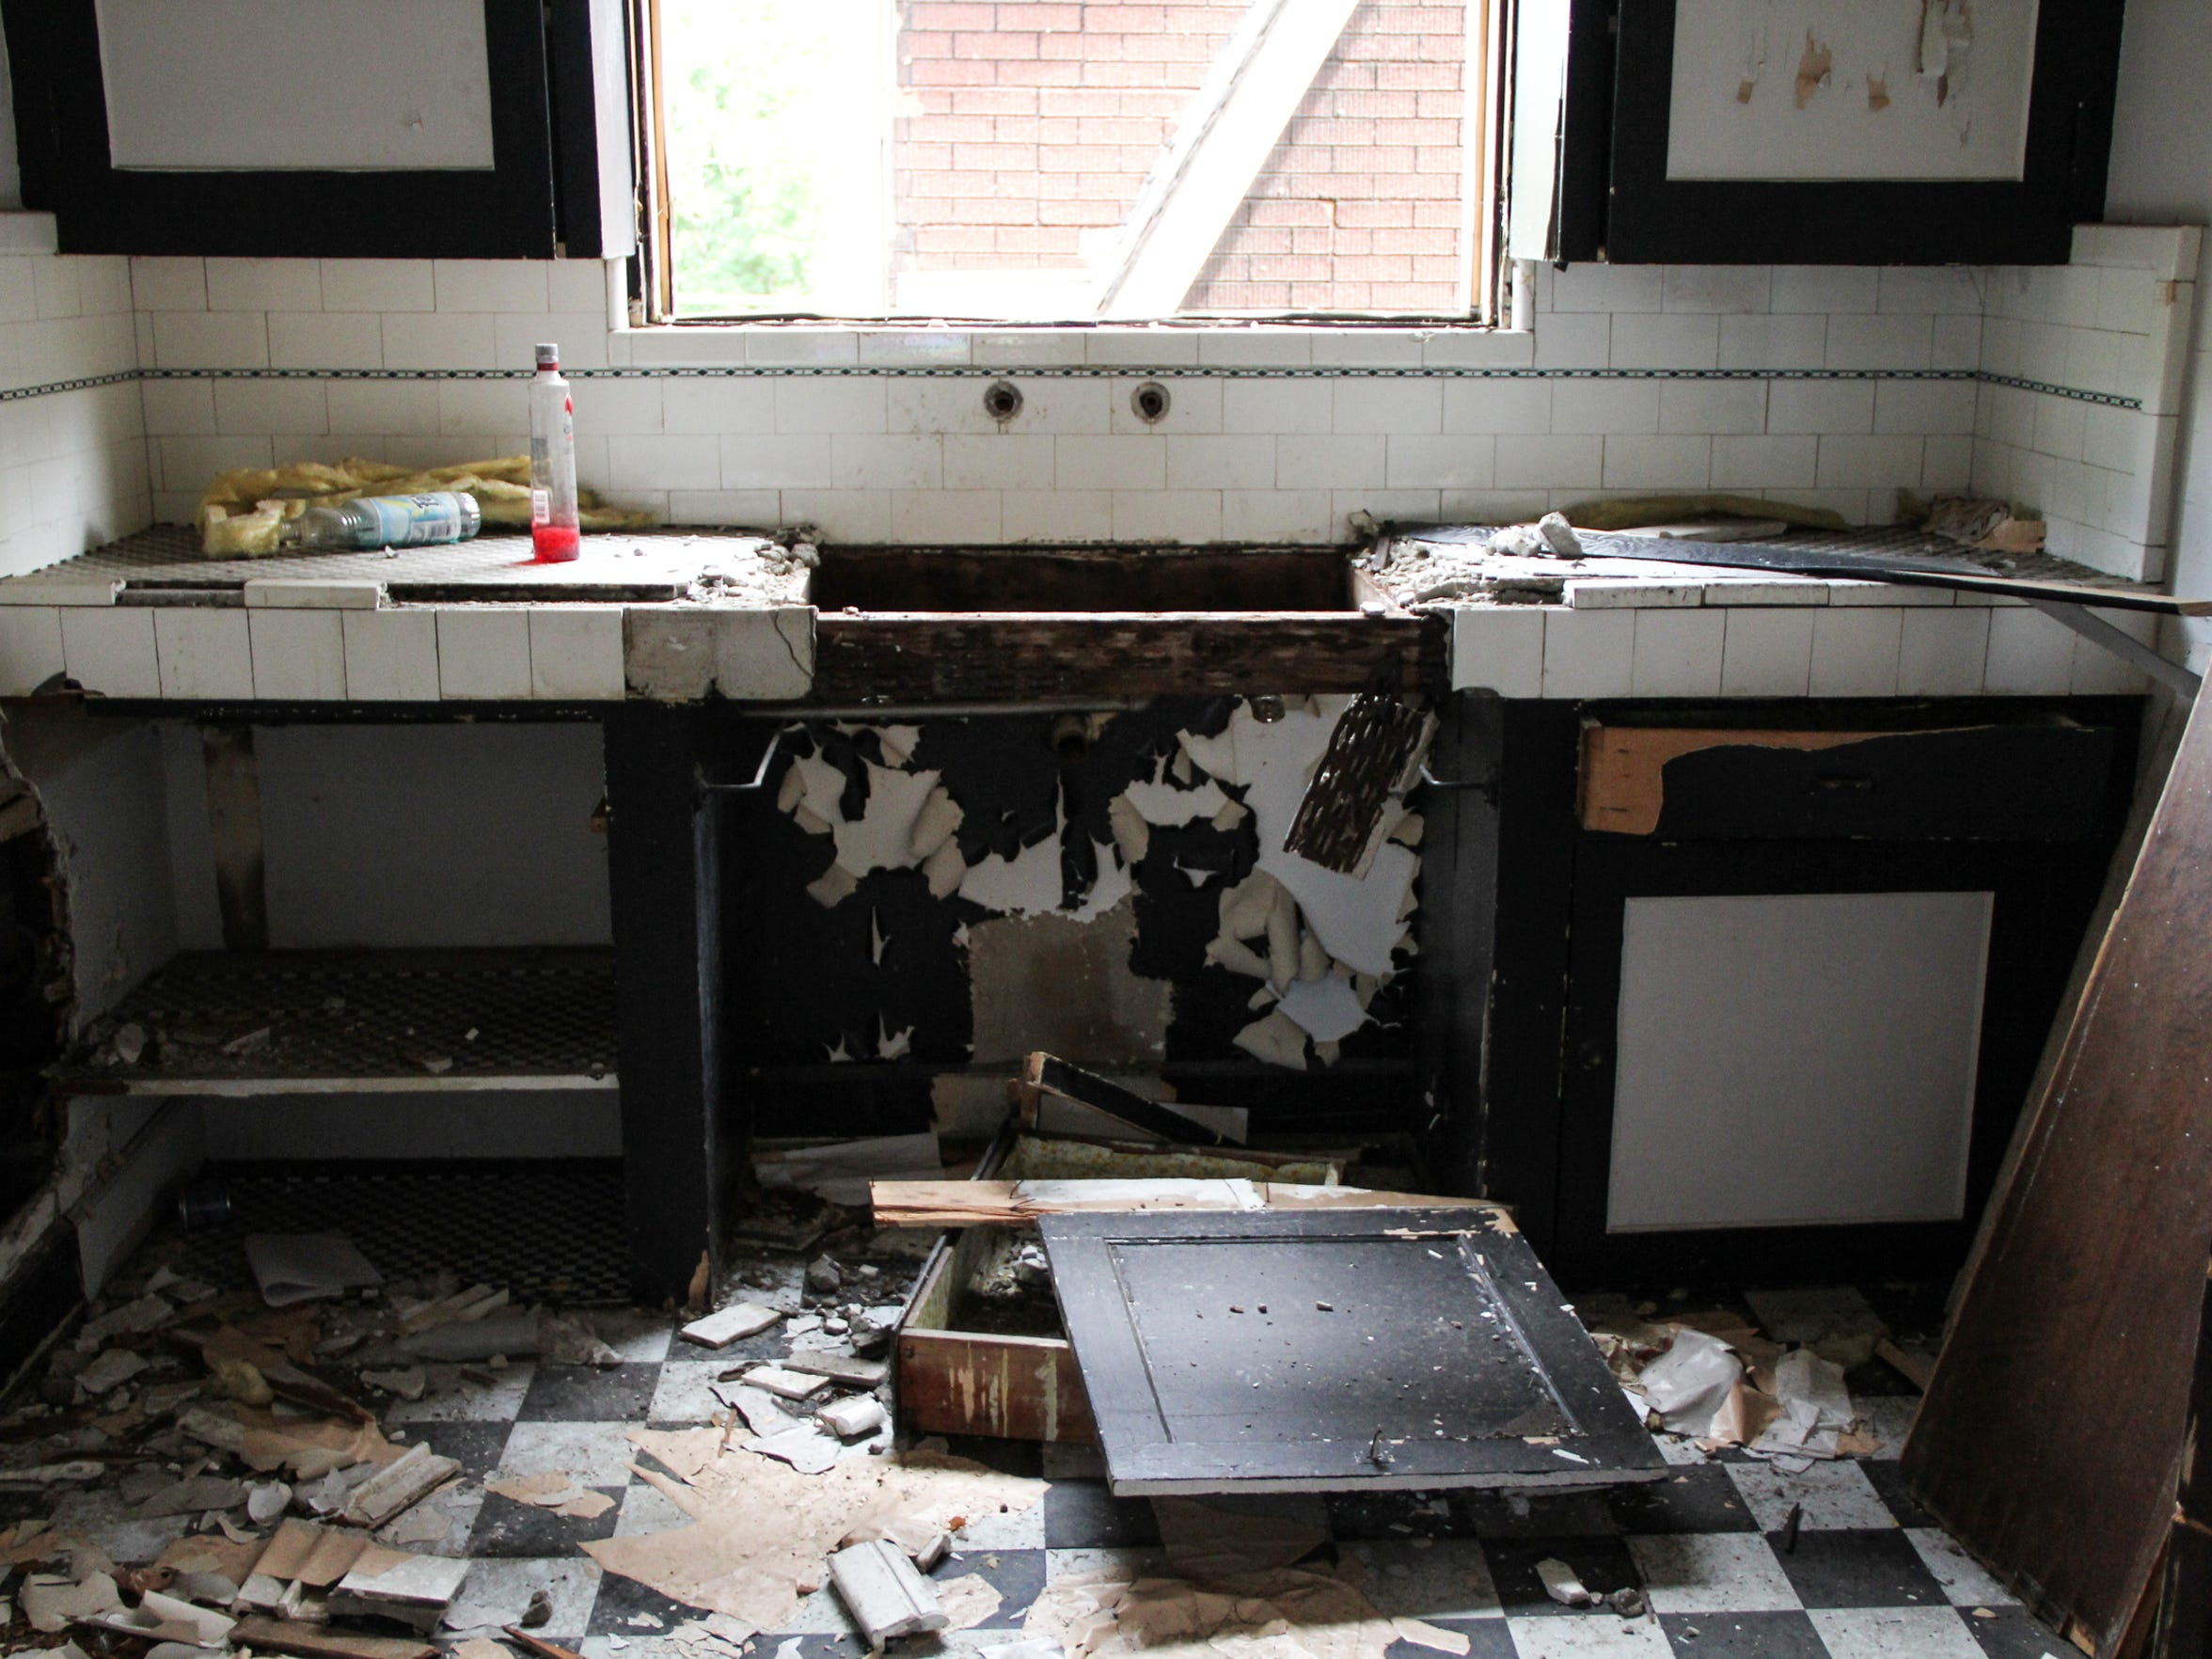 Scavengers destroyed the kitchen in the second-floor apartment at 7124 Tuxedo in Detroit after the home was abandoned in 2012. They took the fixtures and pipes and some tiles.